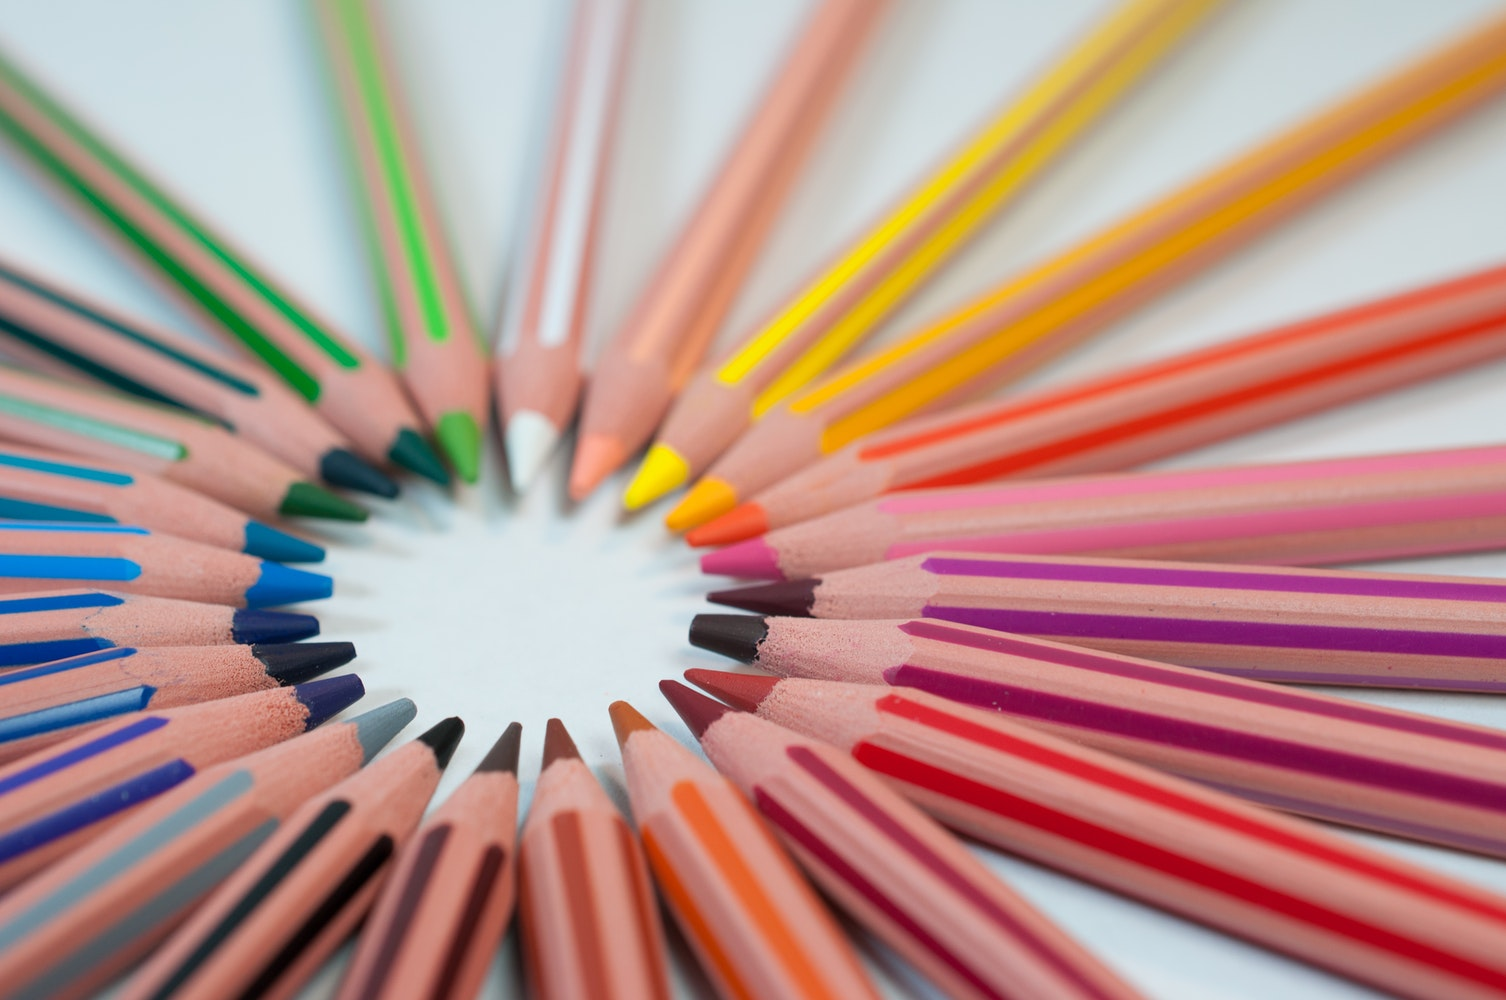 Set of colored pencils in a circle